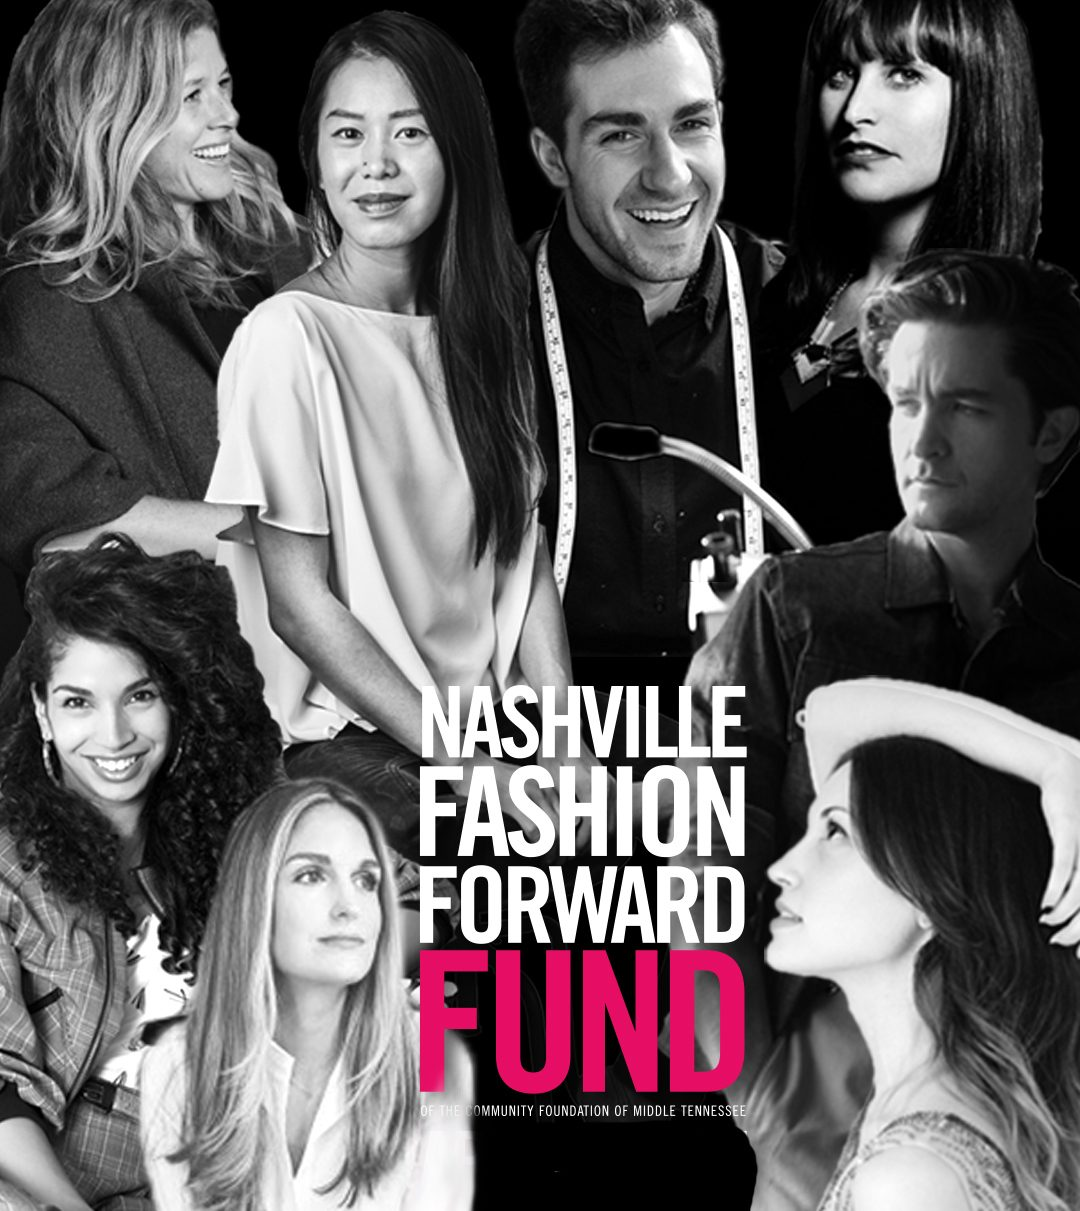 Nashville Fashion Forward Fund